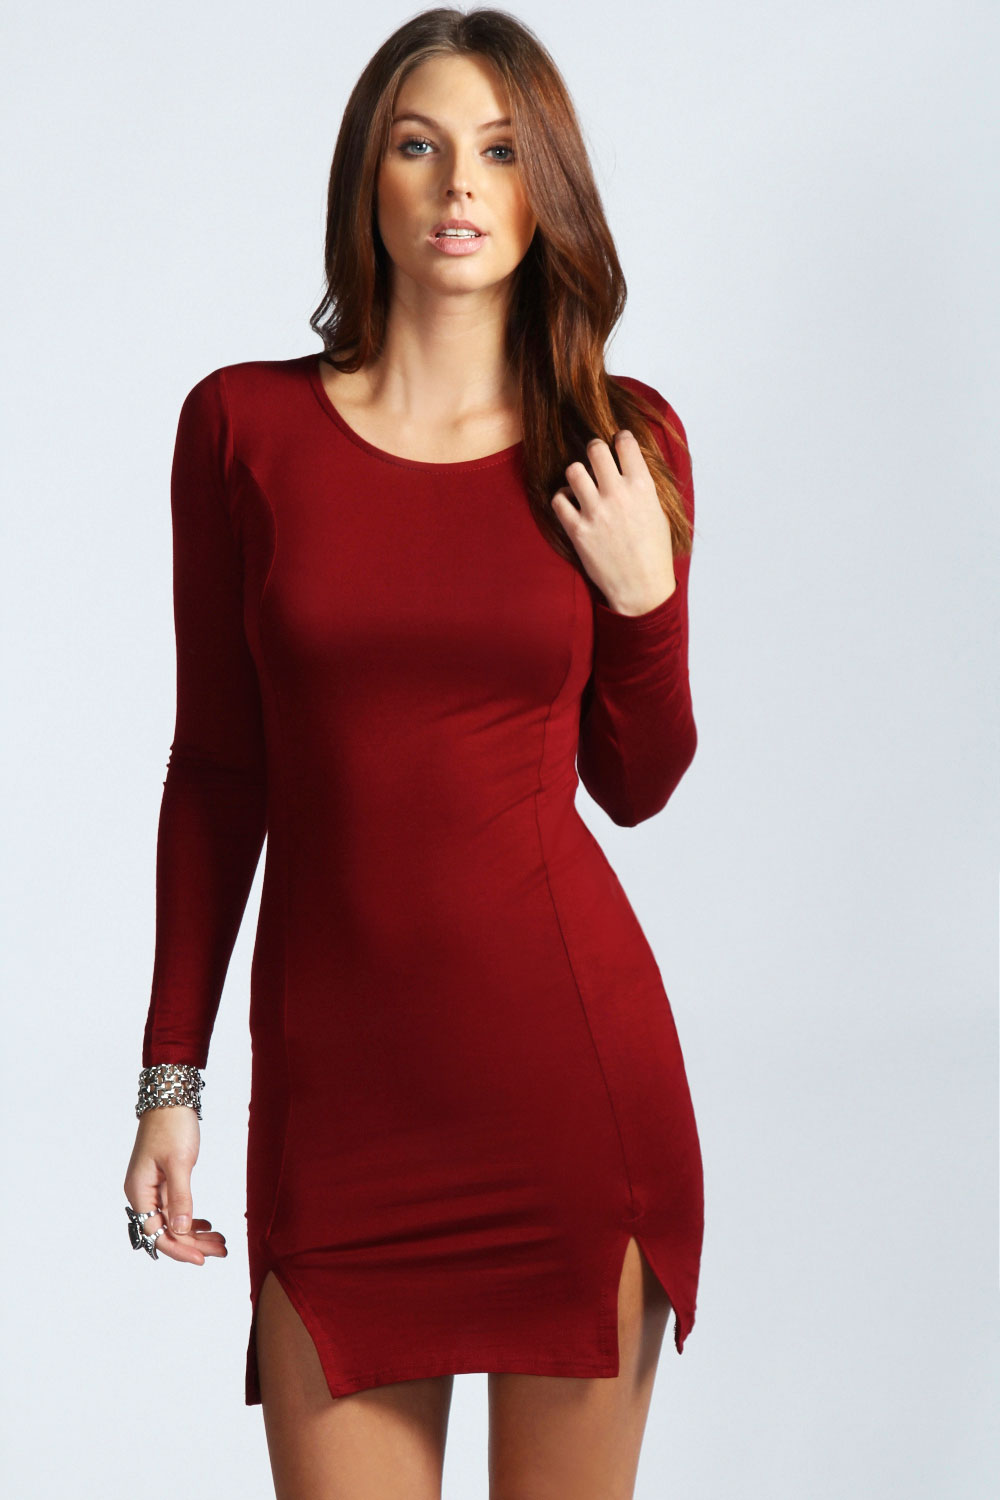 Details about Boohoo Sophie Long Sleeve Front Split Bodycon Dress